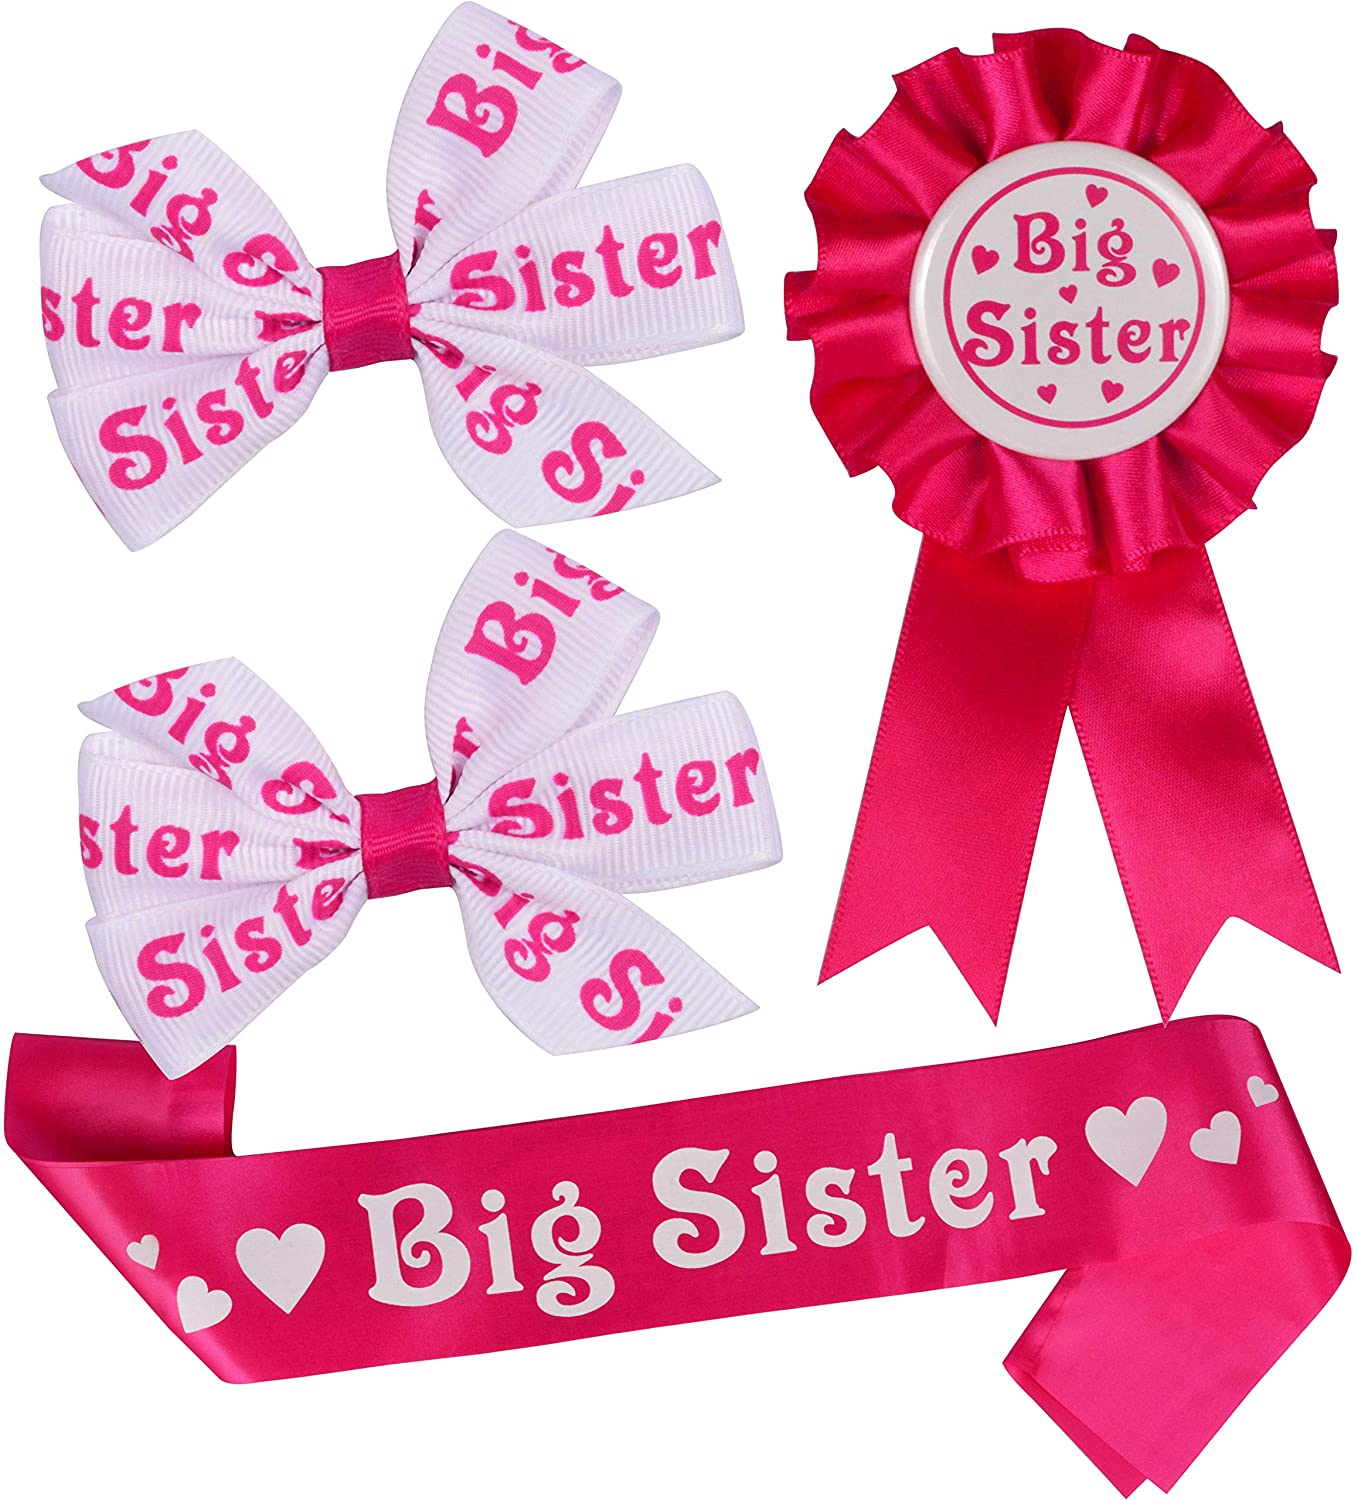 Big Sister for Baby Shower Sash, Big Sister Hair Clips, Big Sister Pin, Daughter Get Promoted To Big Sisters Idea Gift Set, I am going to be Big Sister, Big Sister to be for Baby Shower Sash, Big Sist